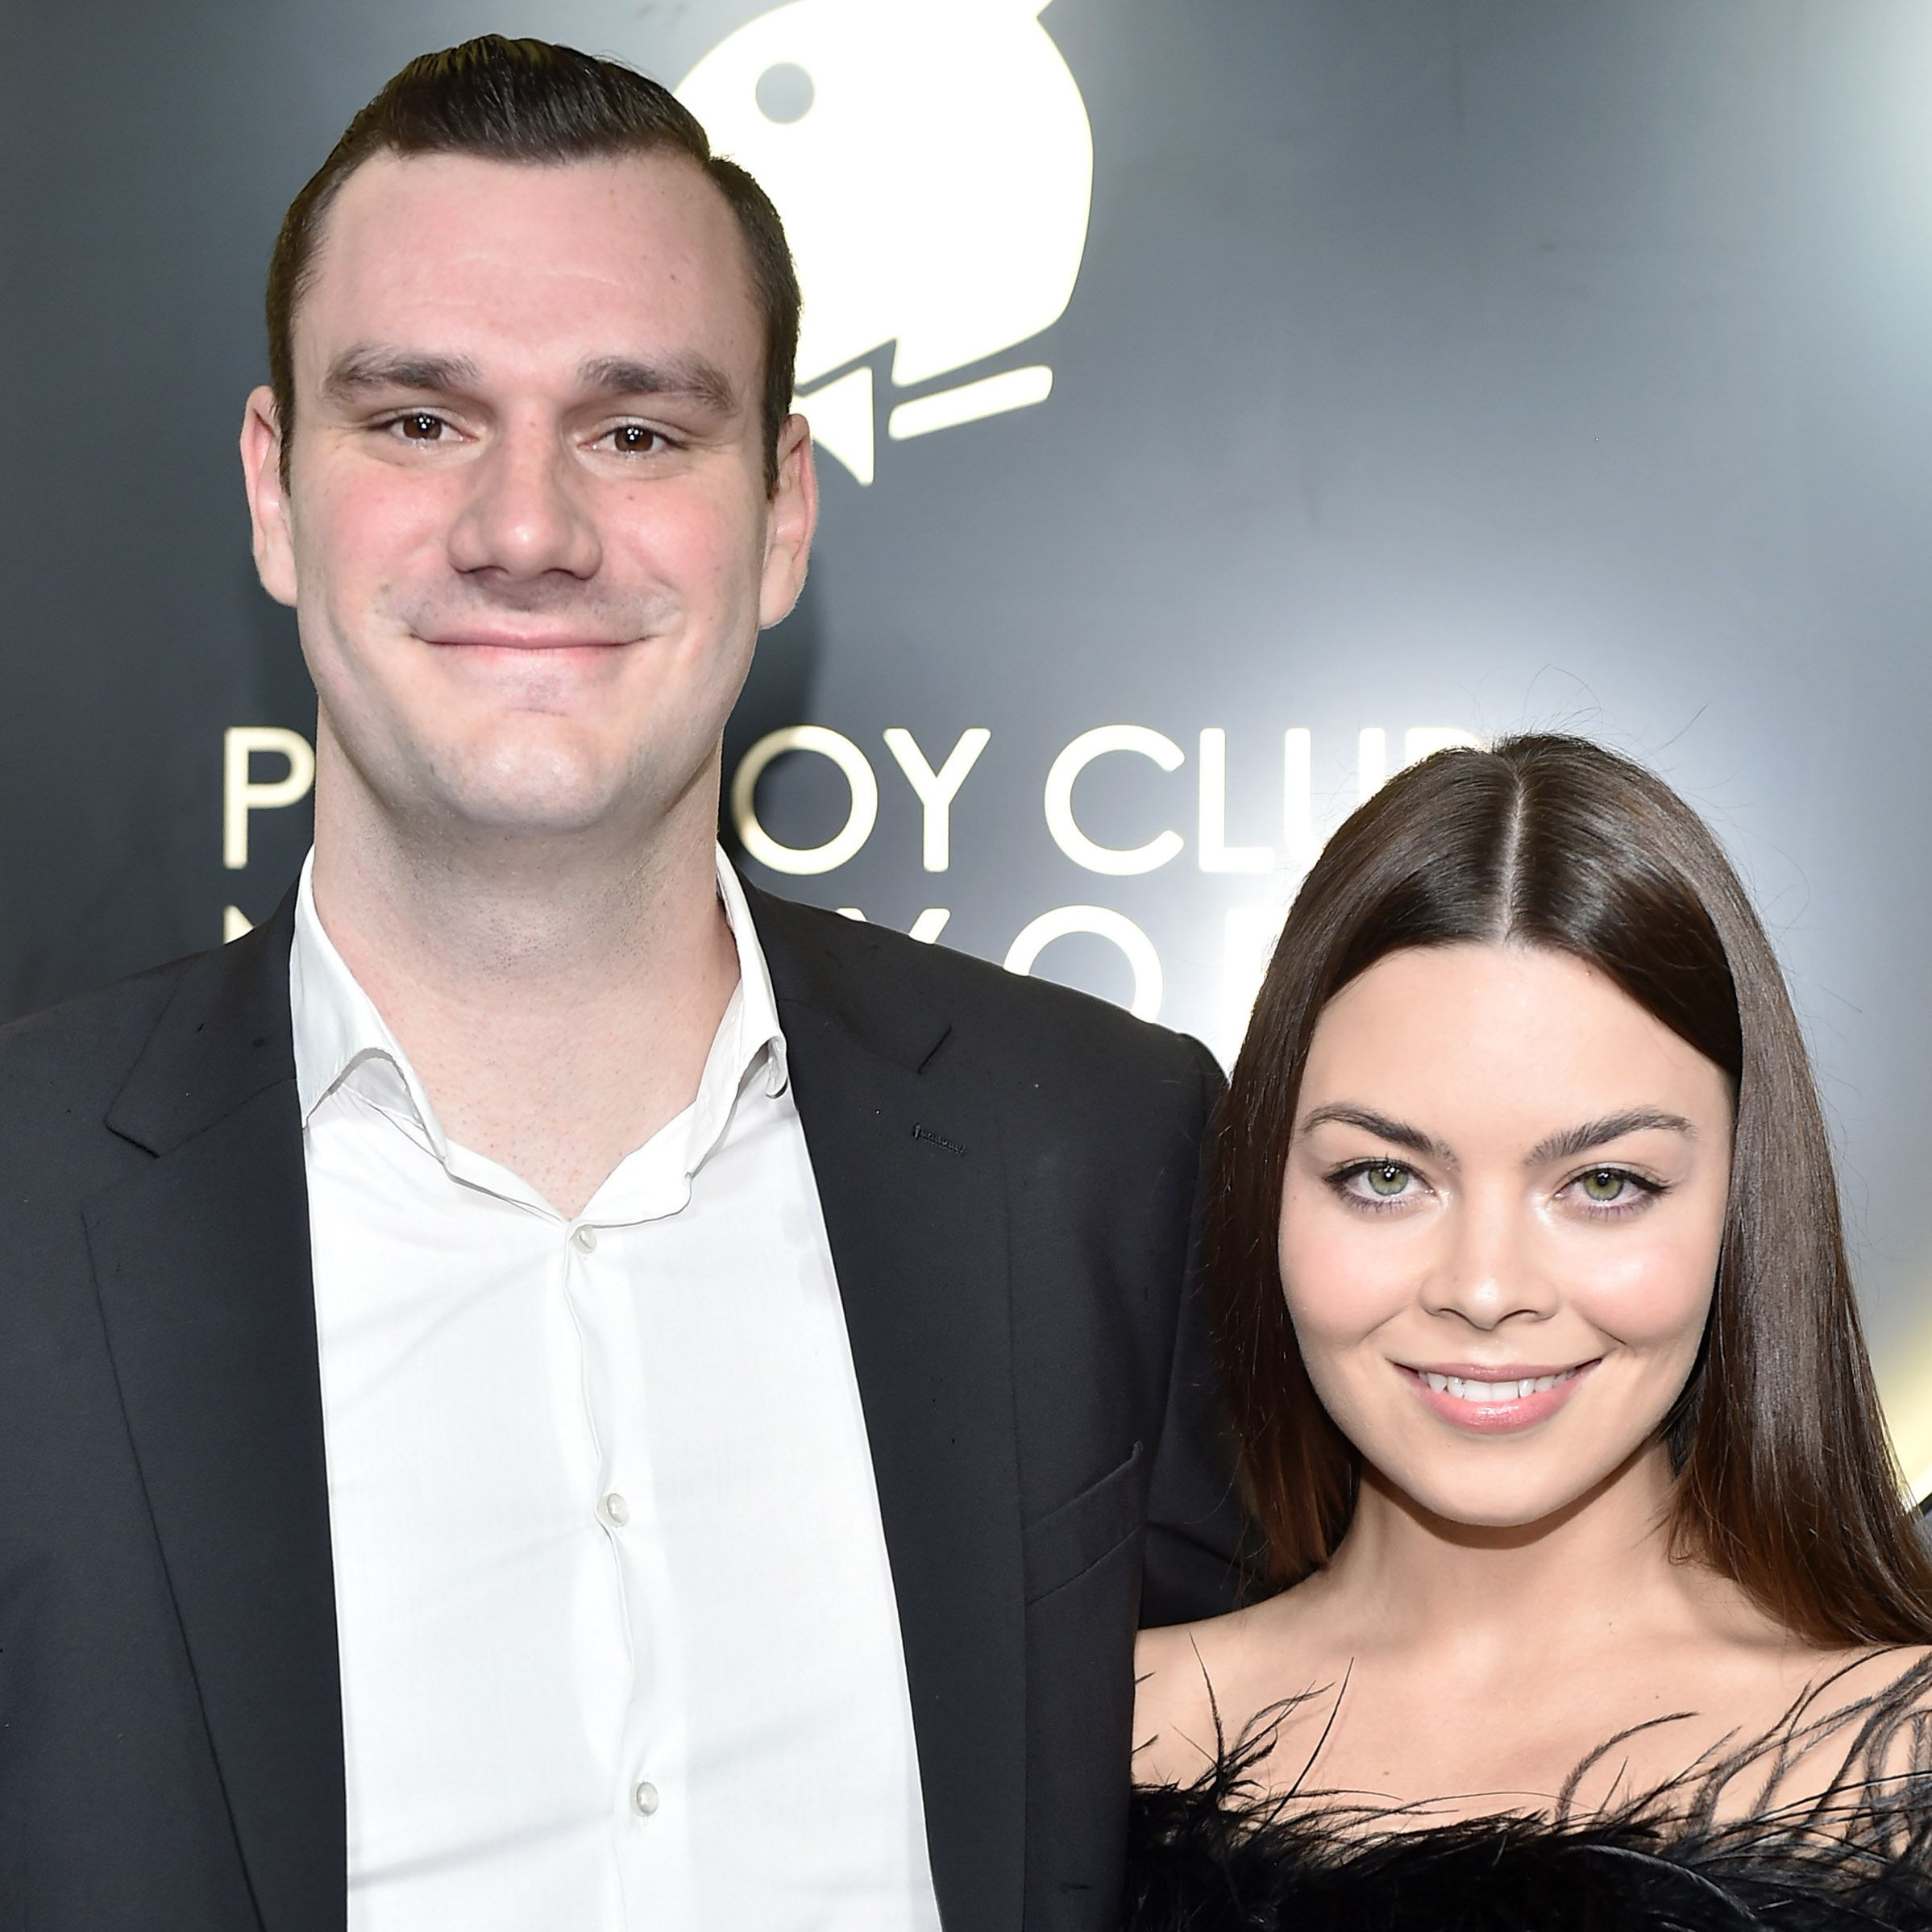 Hugh Hefner's Son Cooper Hefner Just Got Hitched To A Harry Potter Actress